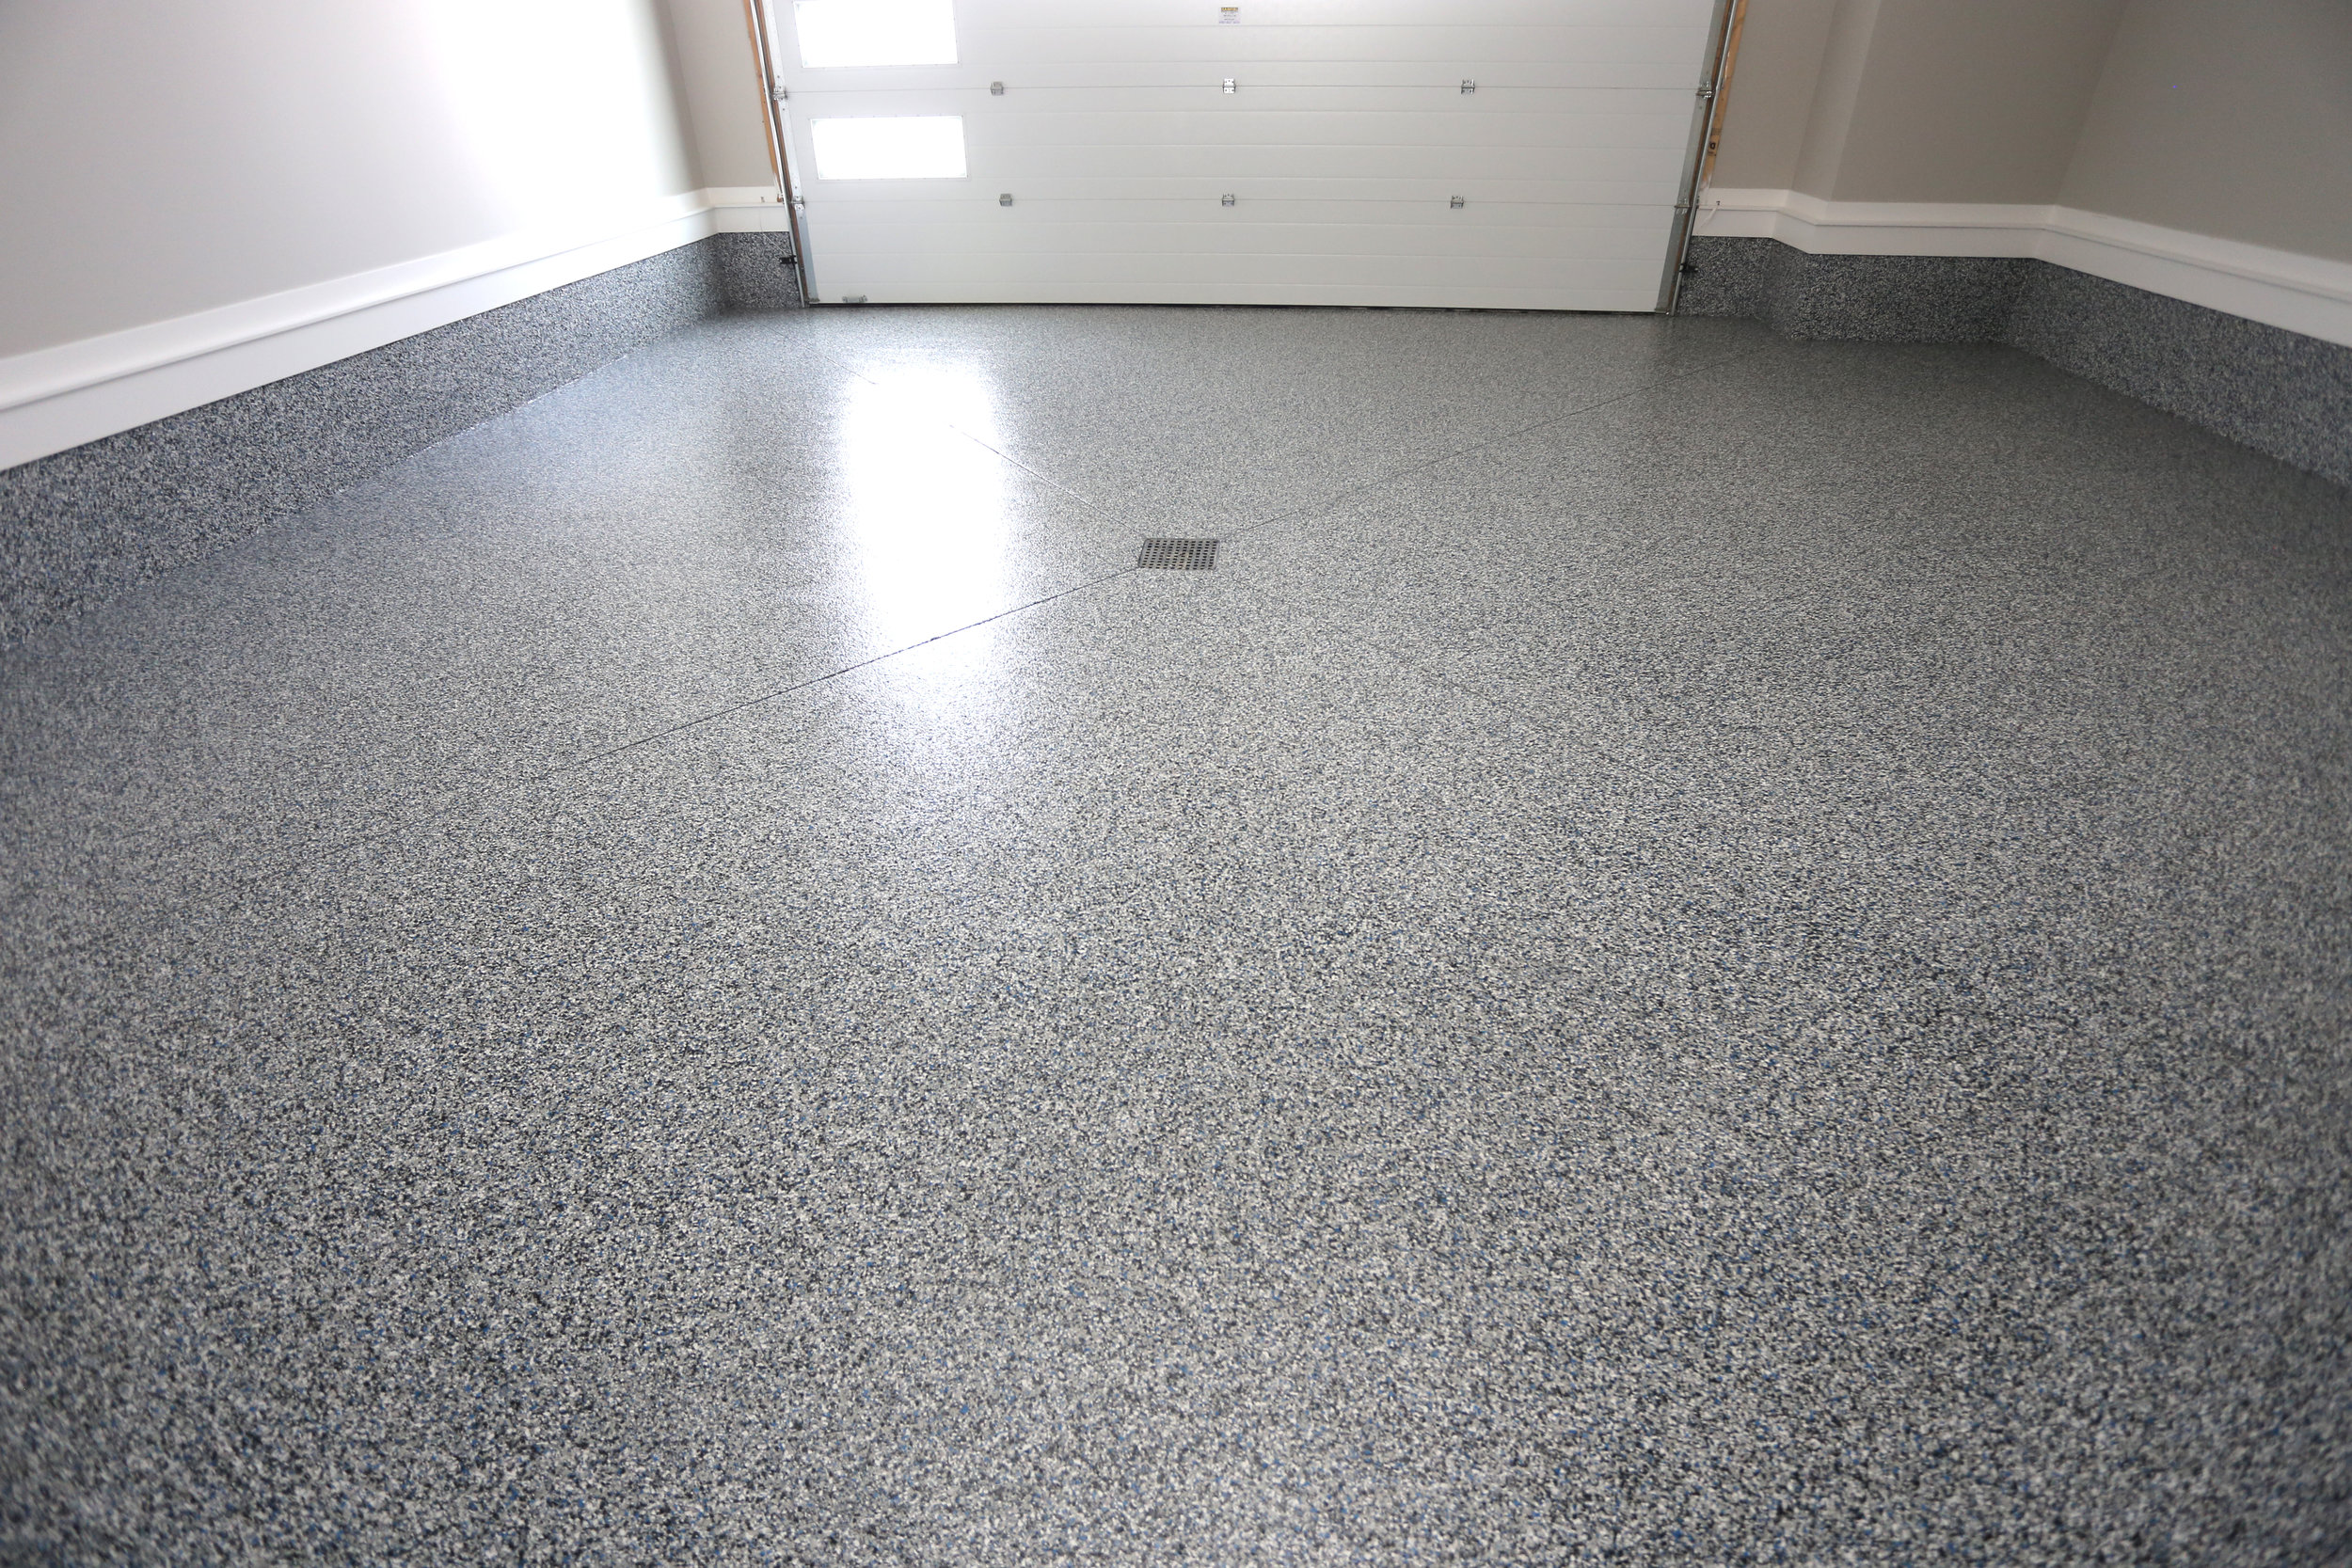 Polyaspartic Garage Floor Coating - Complete